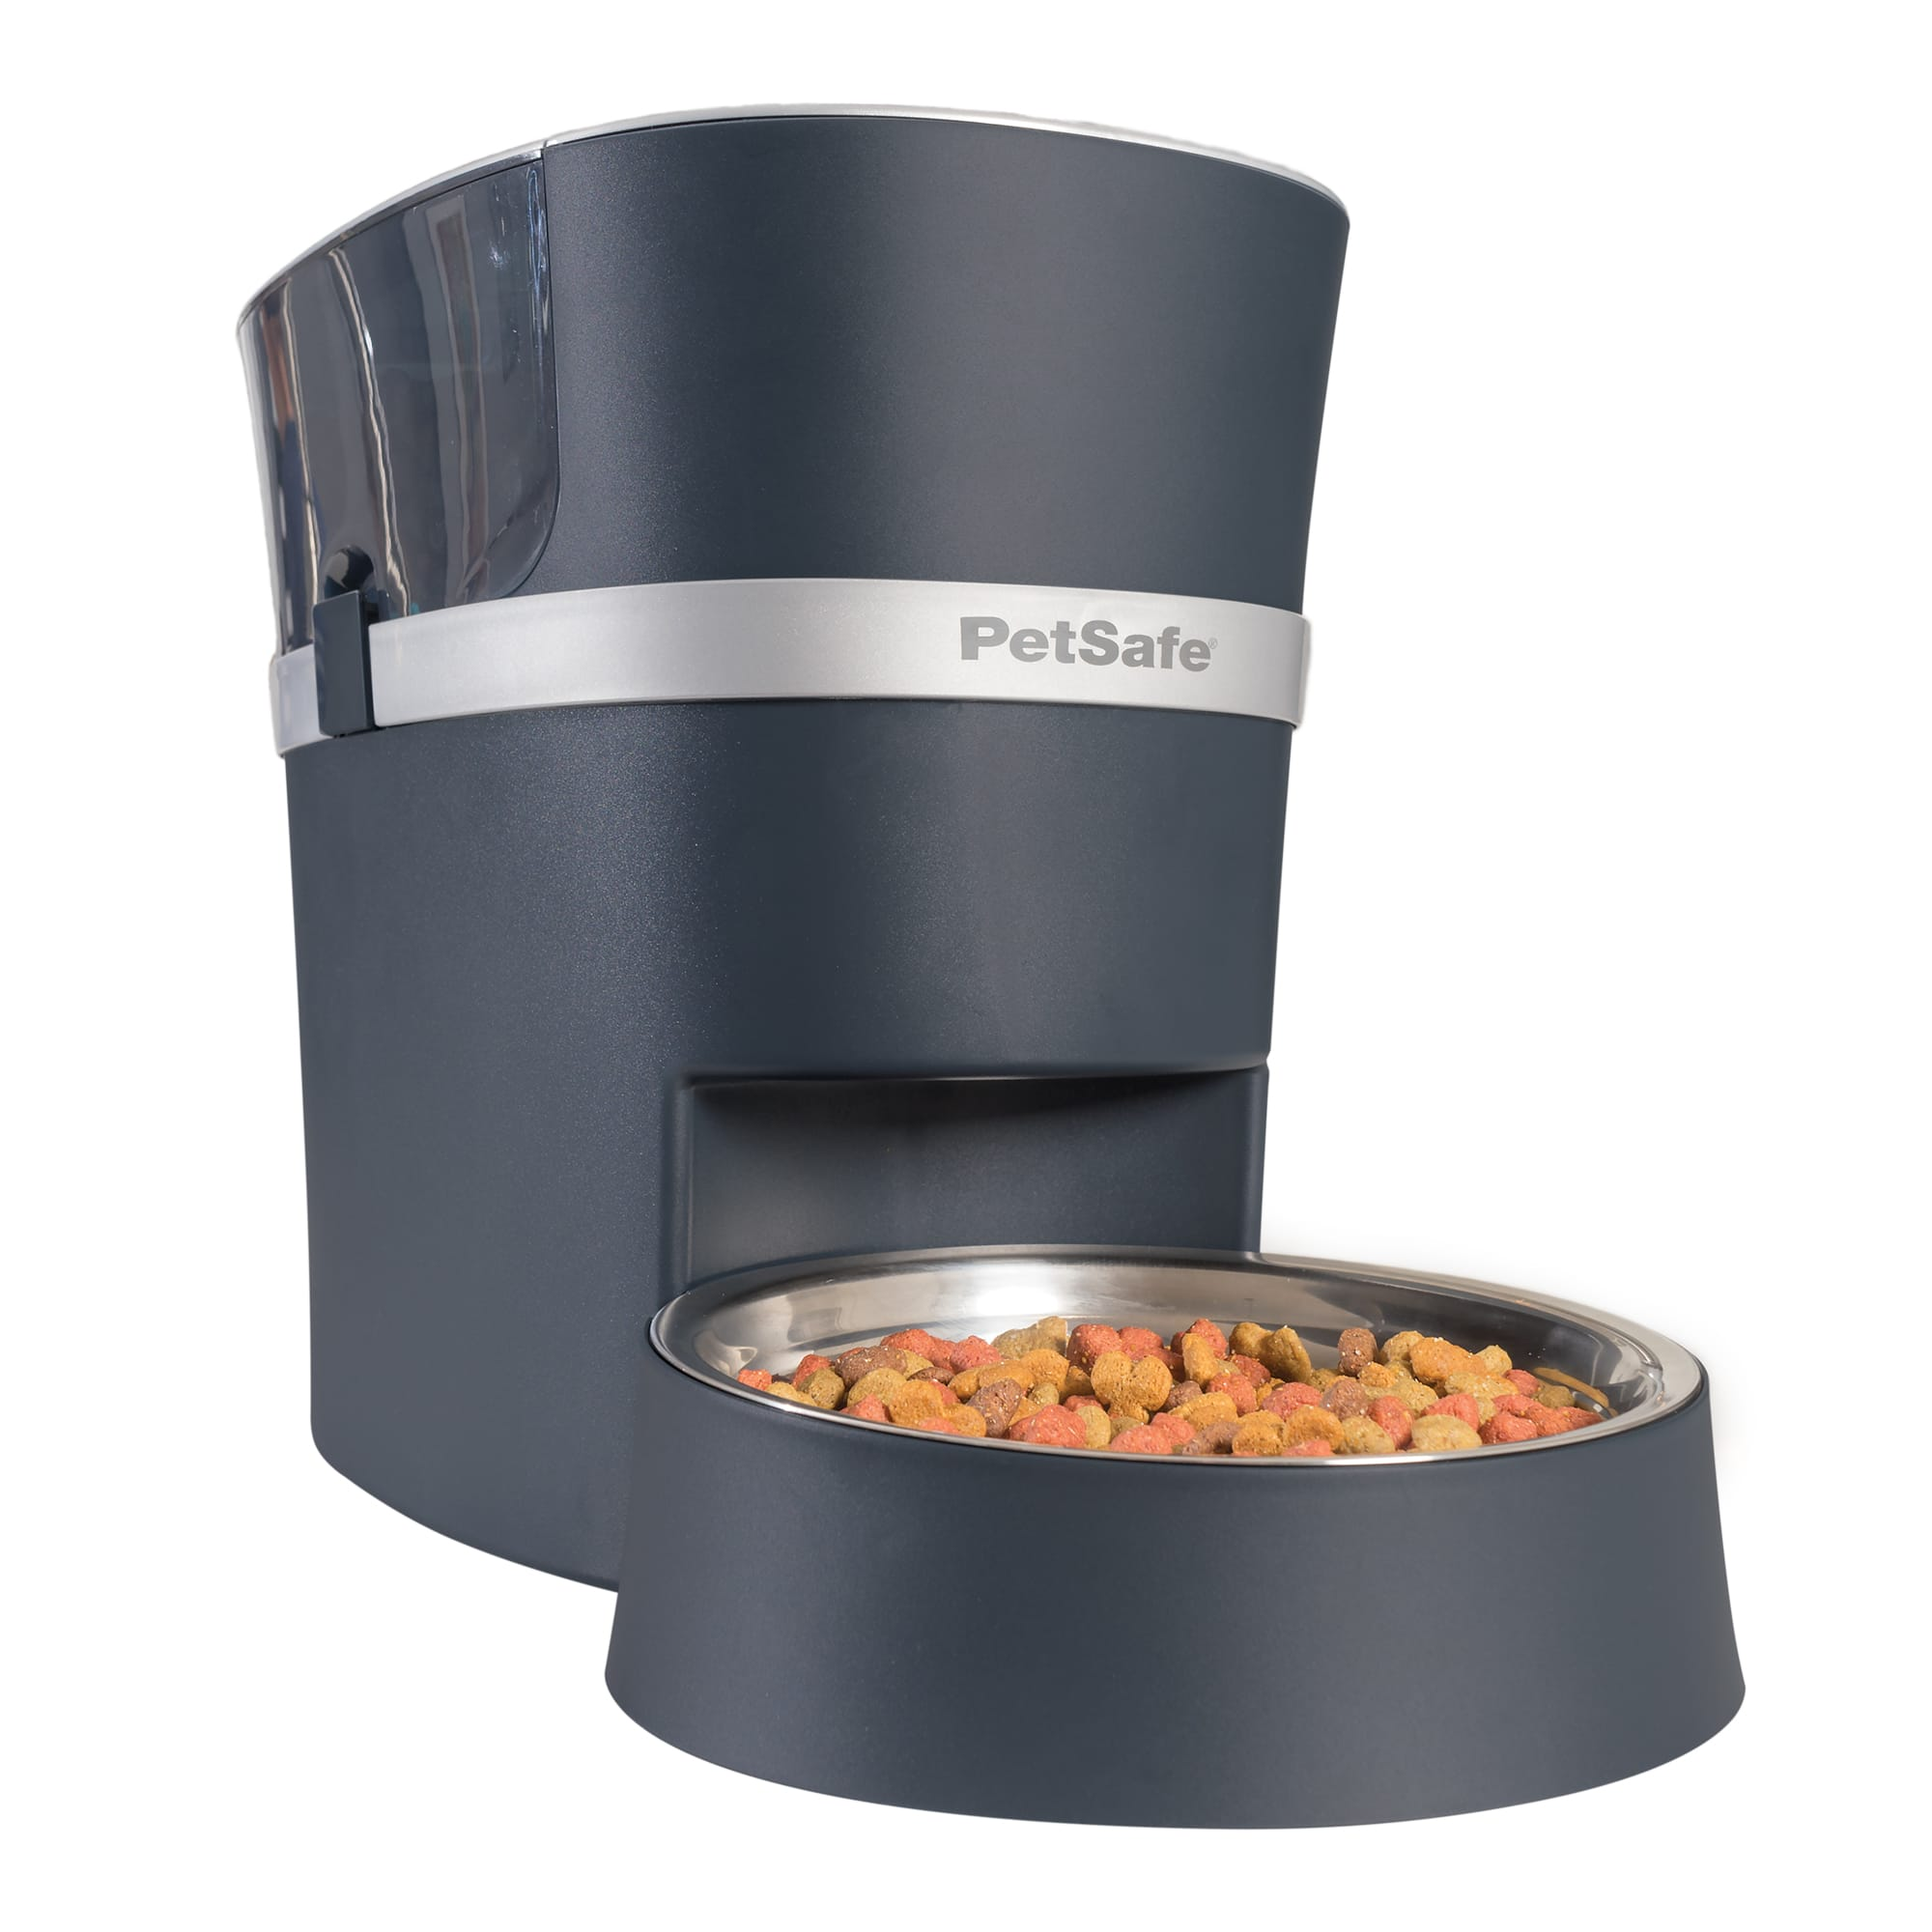 Petsafe Second Generation Dog And Cat Automatic Smart Feeder Petco